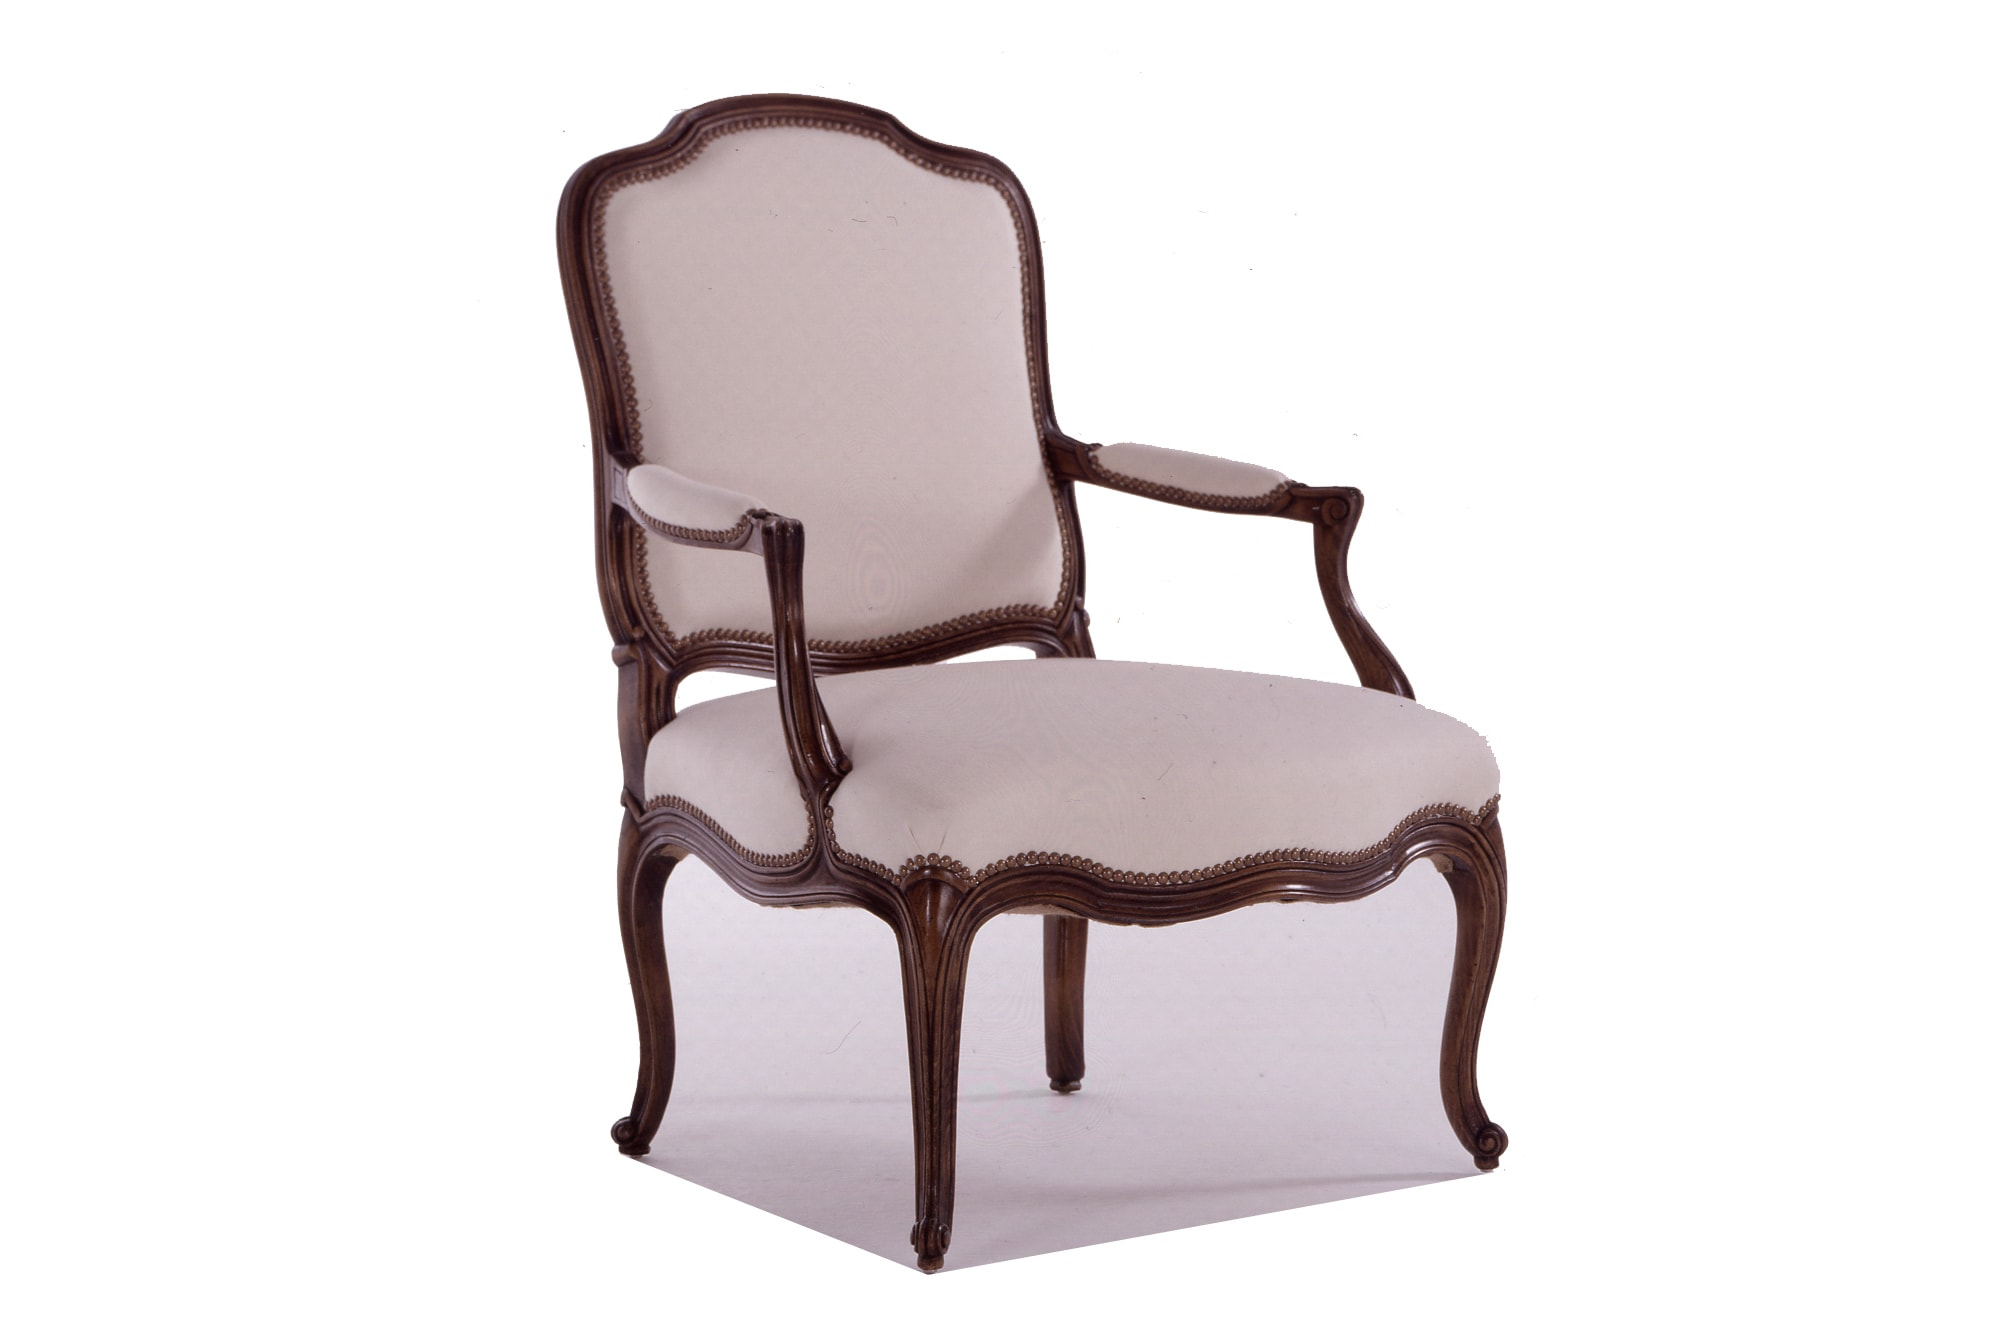 lawson wood ltd louis xv fauteuil. Black Bedroom Furniture Sets. Home Design Ideas